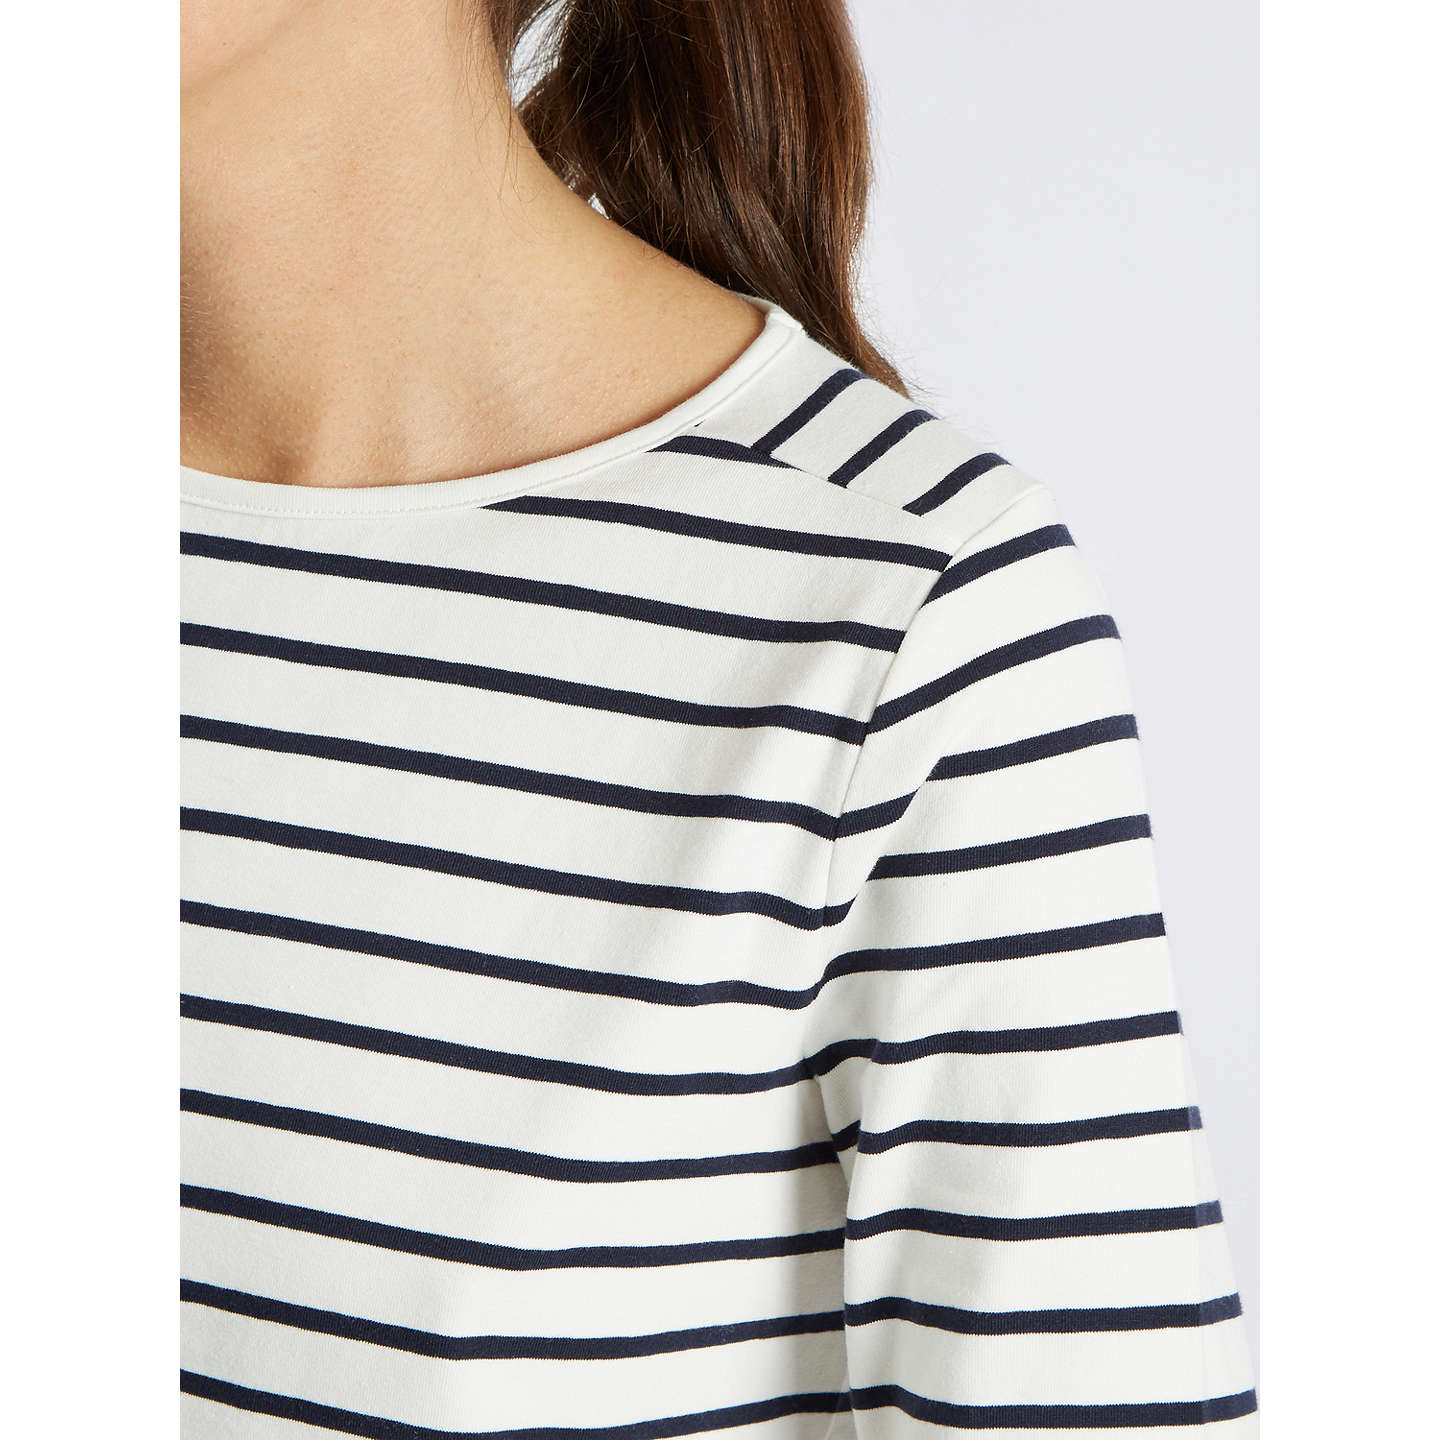 BuyJaeger Classic Breton Striped Top, Ivory/Navy, XS Online at johnlewis.com